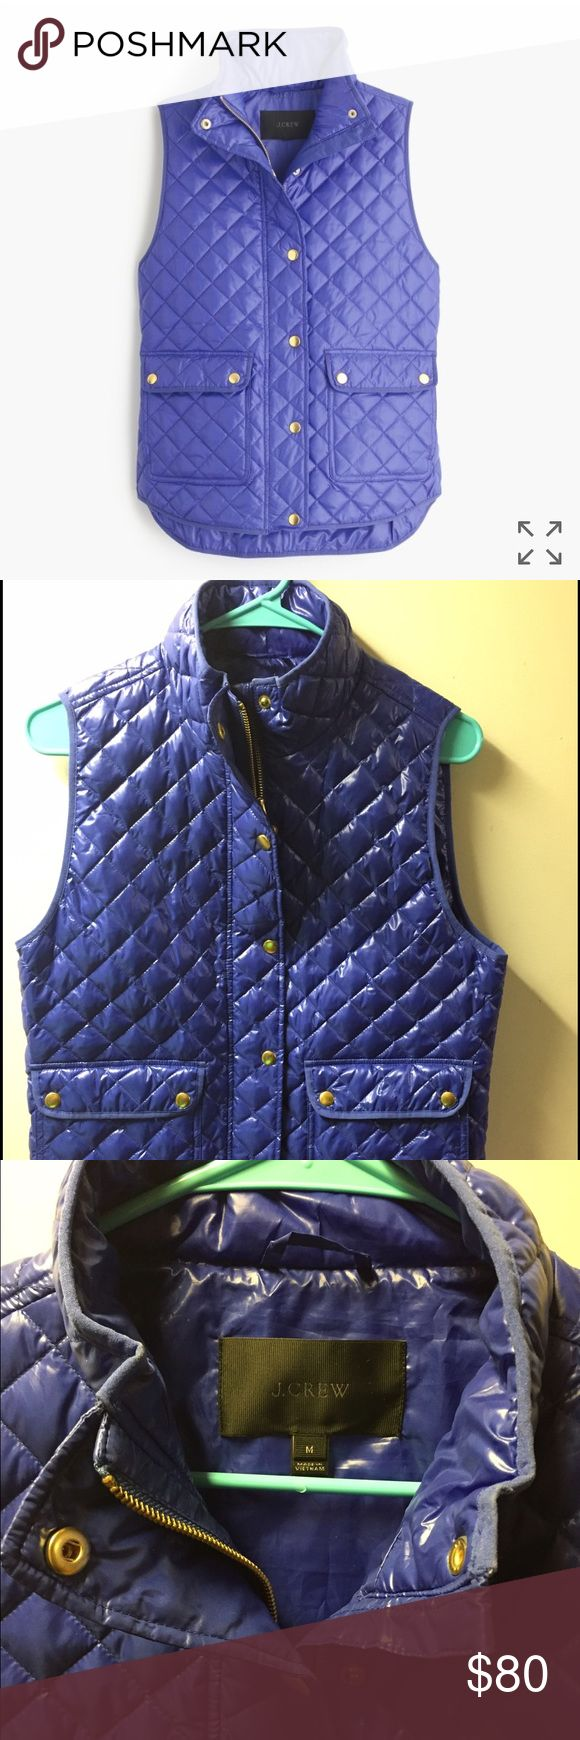 J. Crew quilted puffer vest: Blue Brand new blue J Crew shiny quilted puffer vest. Never worn and purchased recently from J Crew. J. Crew Jackets & Coats Vests